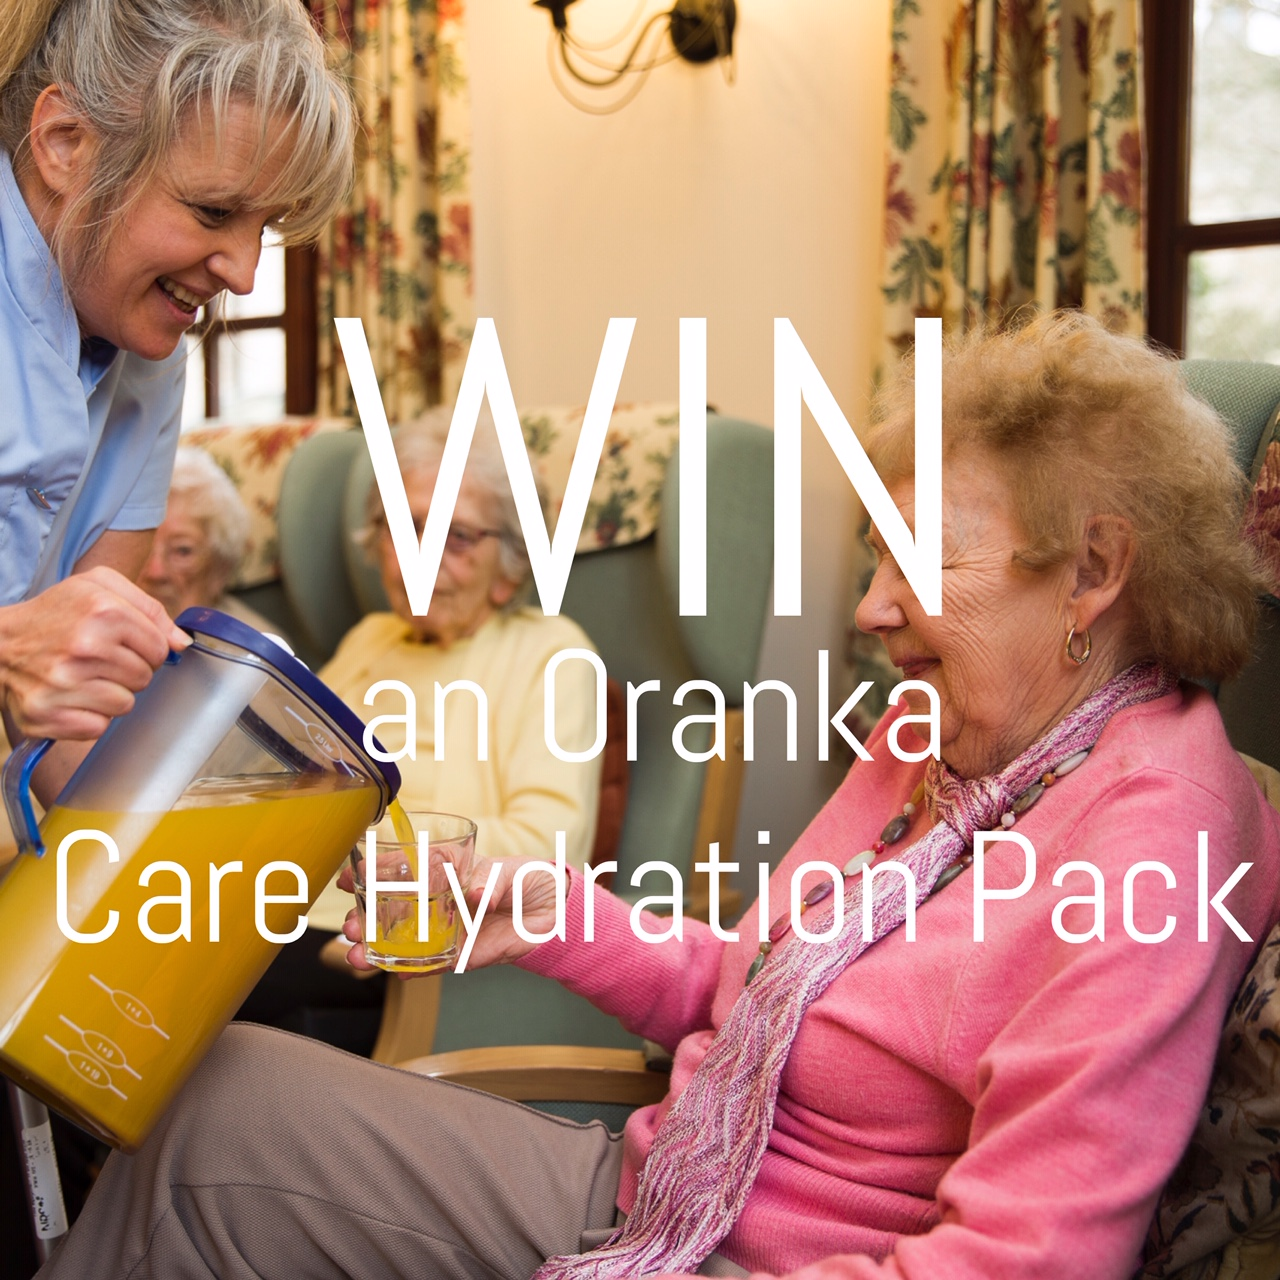 Oranka Care Hydration Pack